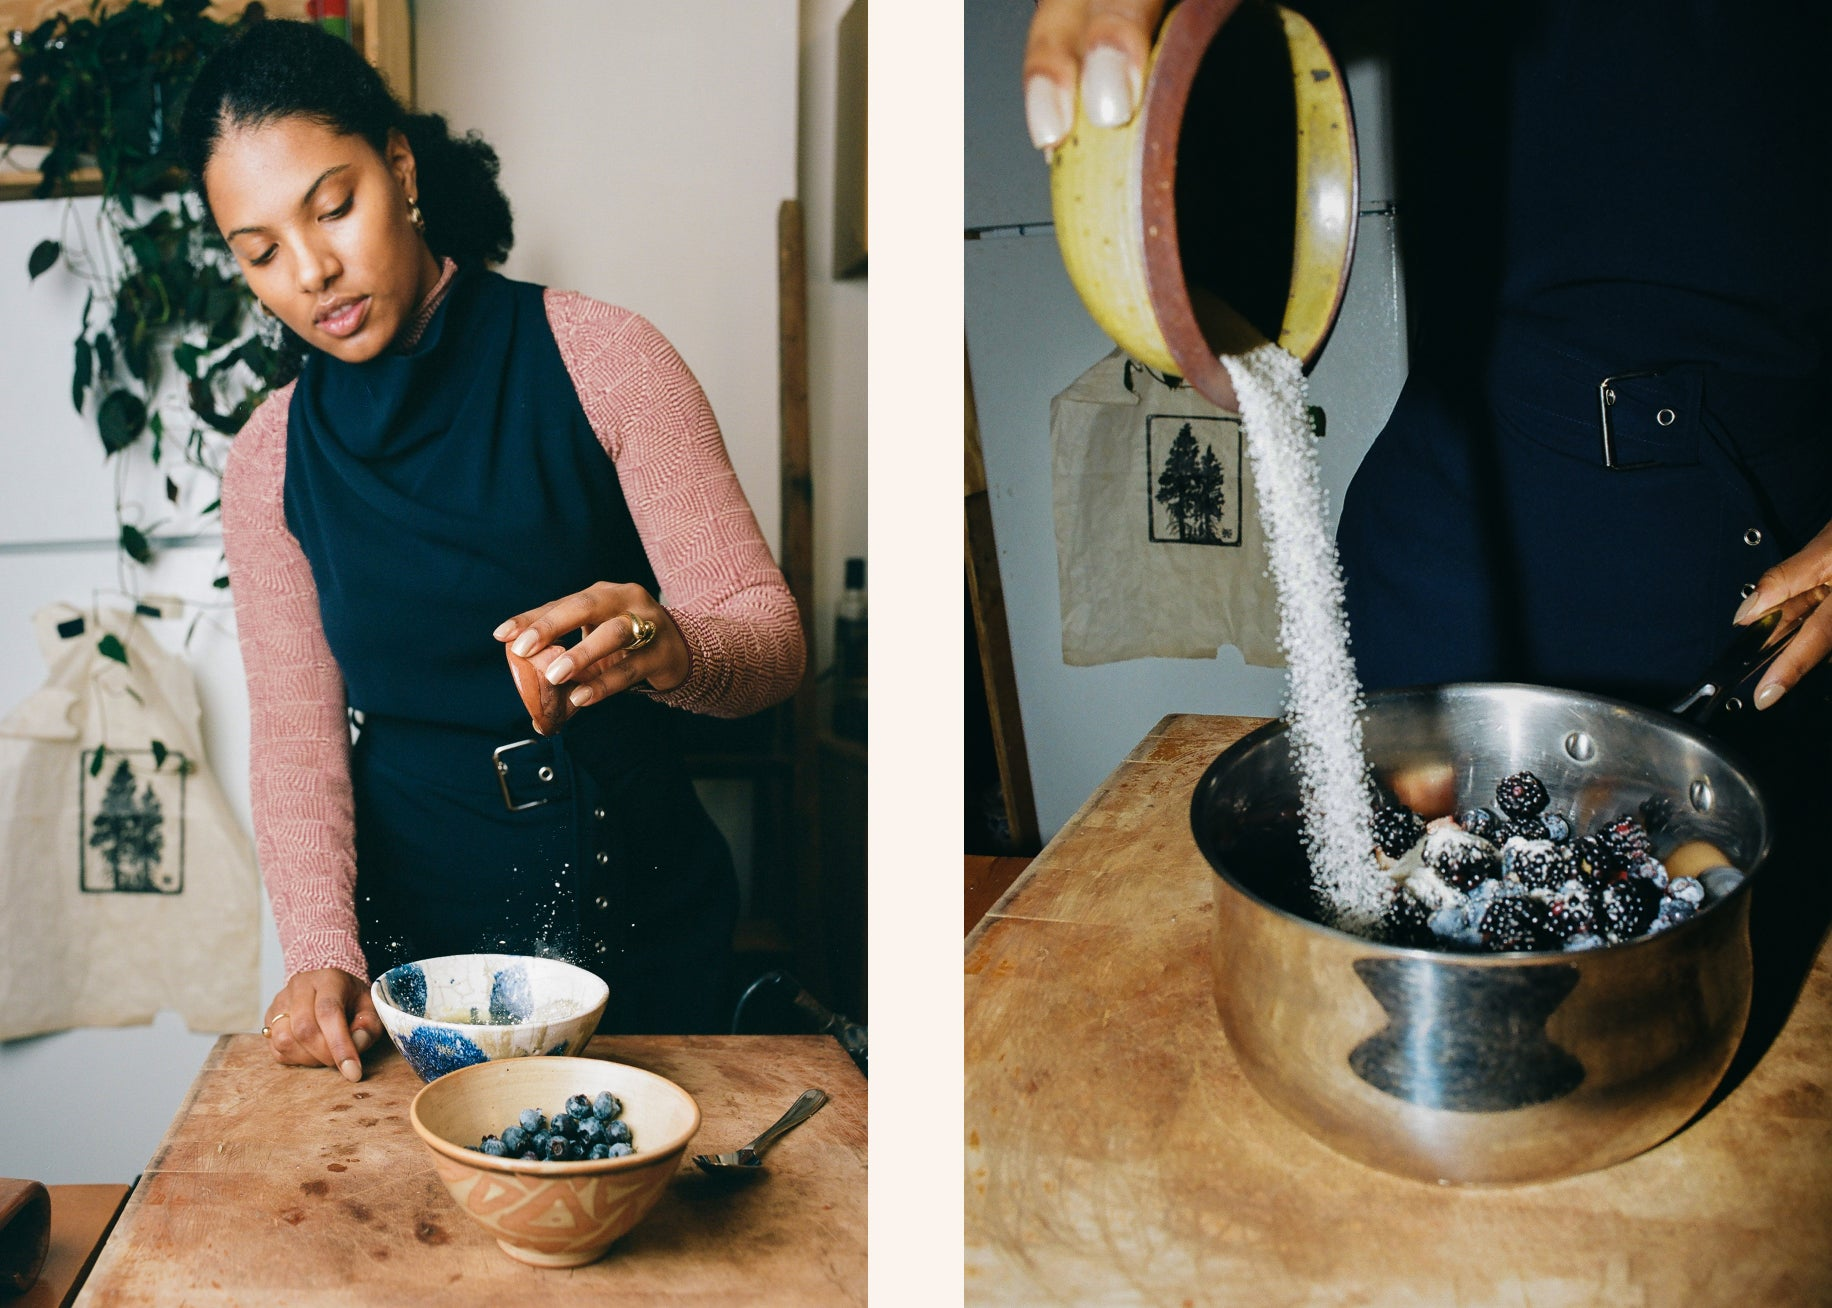 On the left, Chef Tara juicing an orange in a bowl. On the right. Chef Tara pouring sugar into a pot filled with berries.